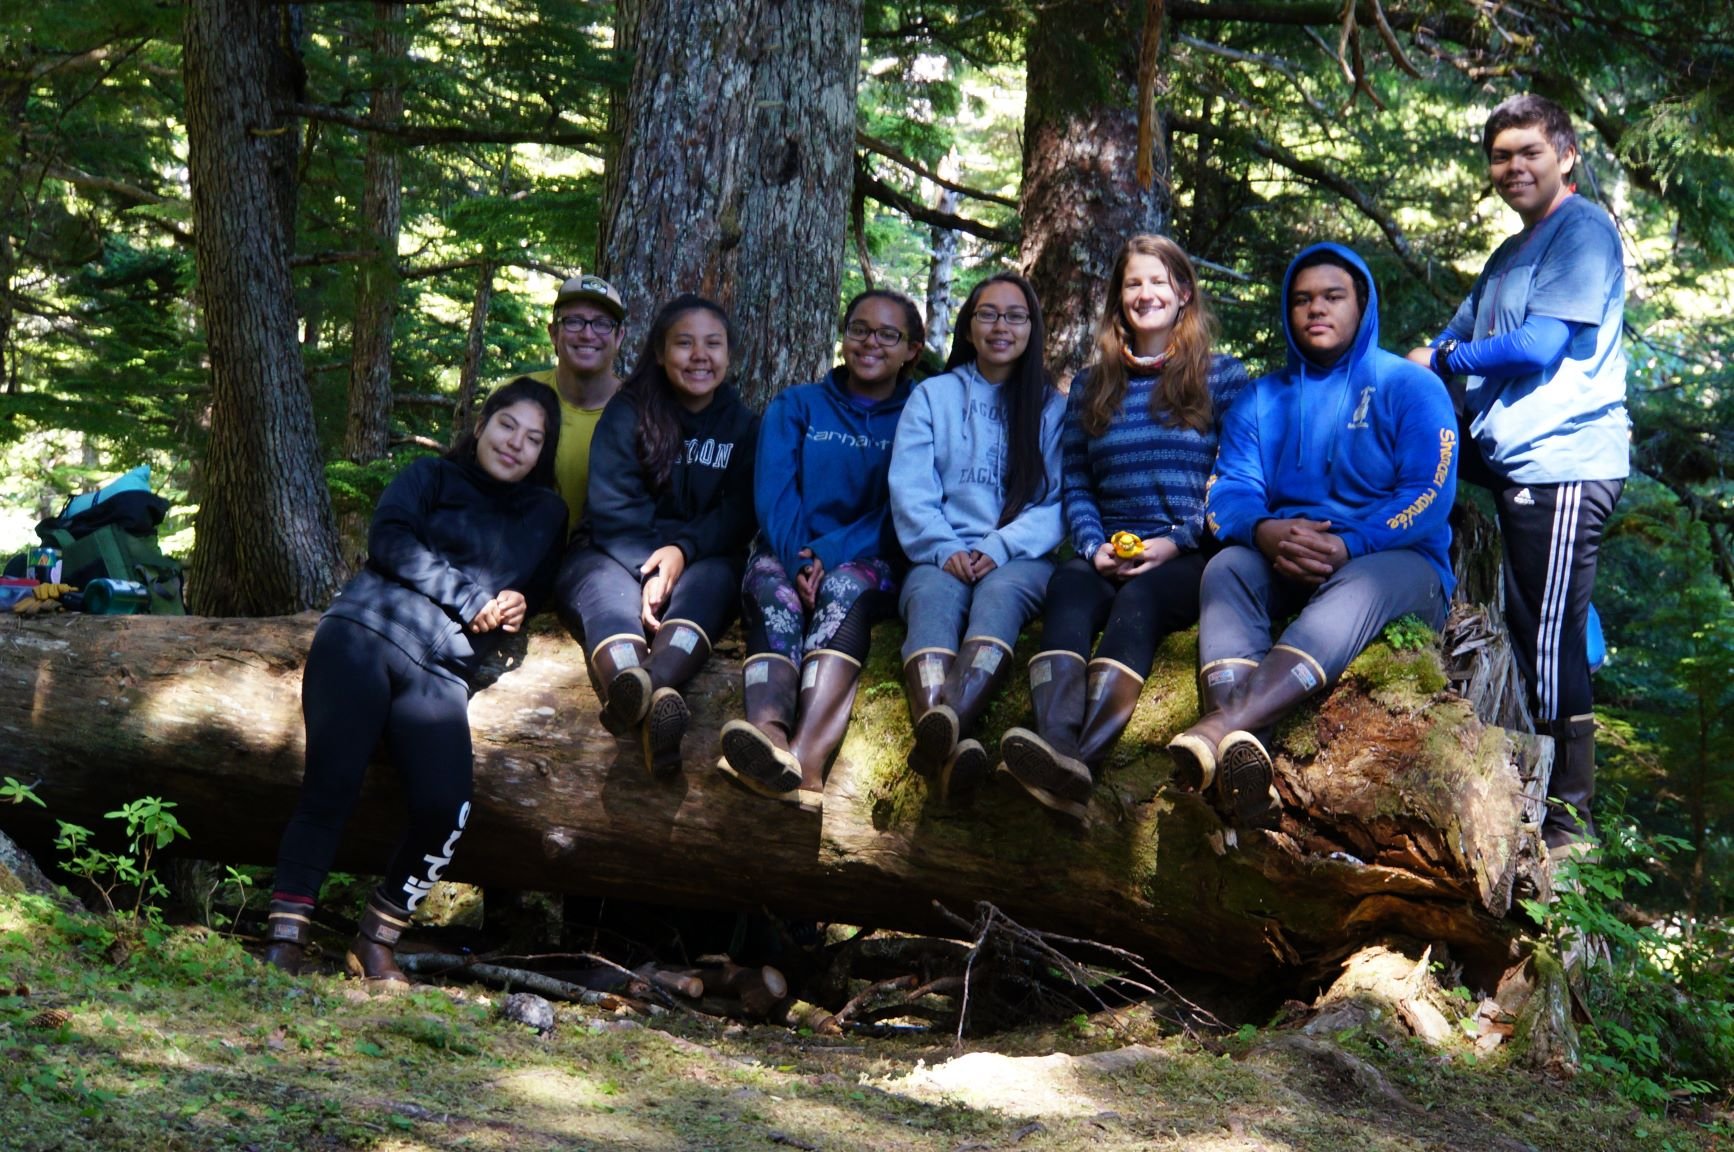 Angoon YCC crew poses on a log, forest in the background